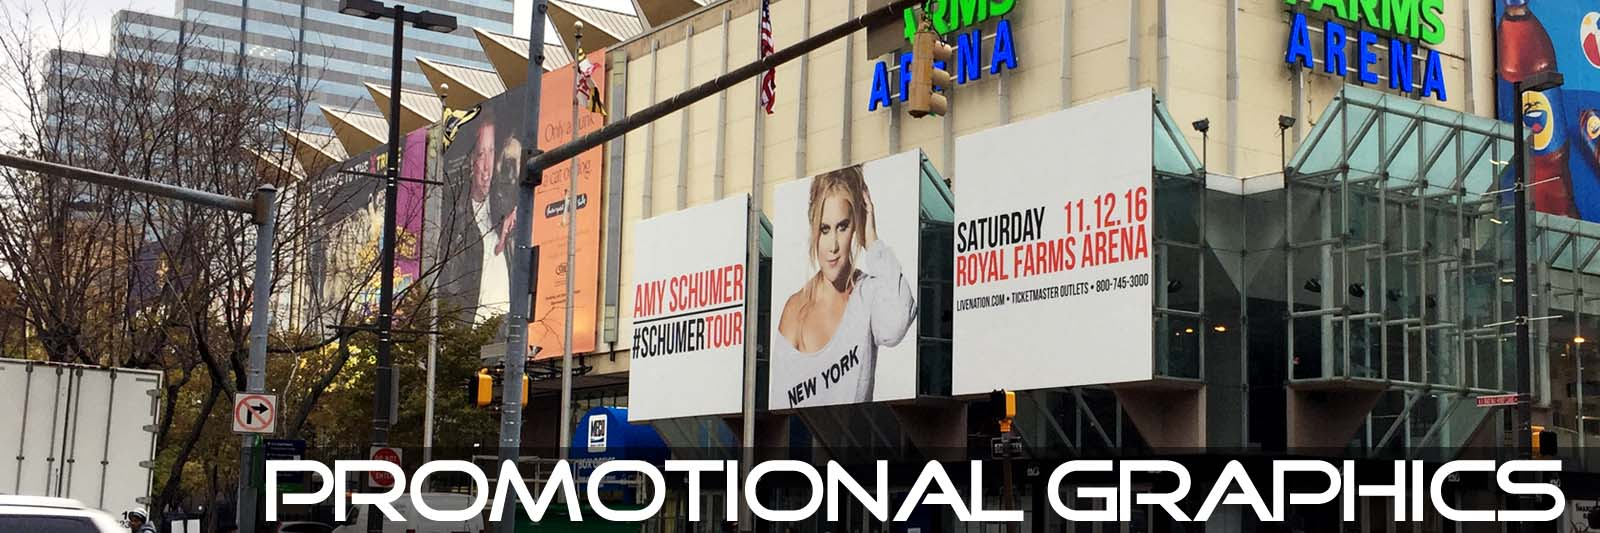 vinyl window graphics Amy-Schumer Promotional Graphics